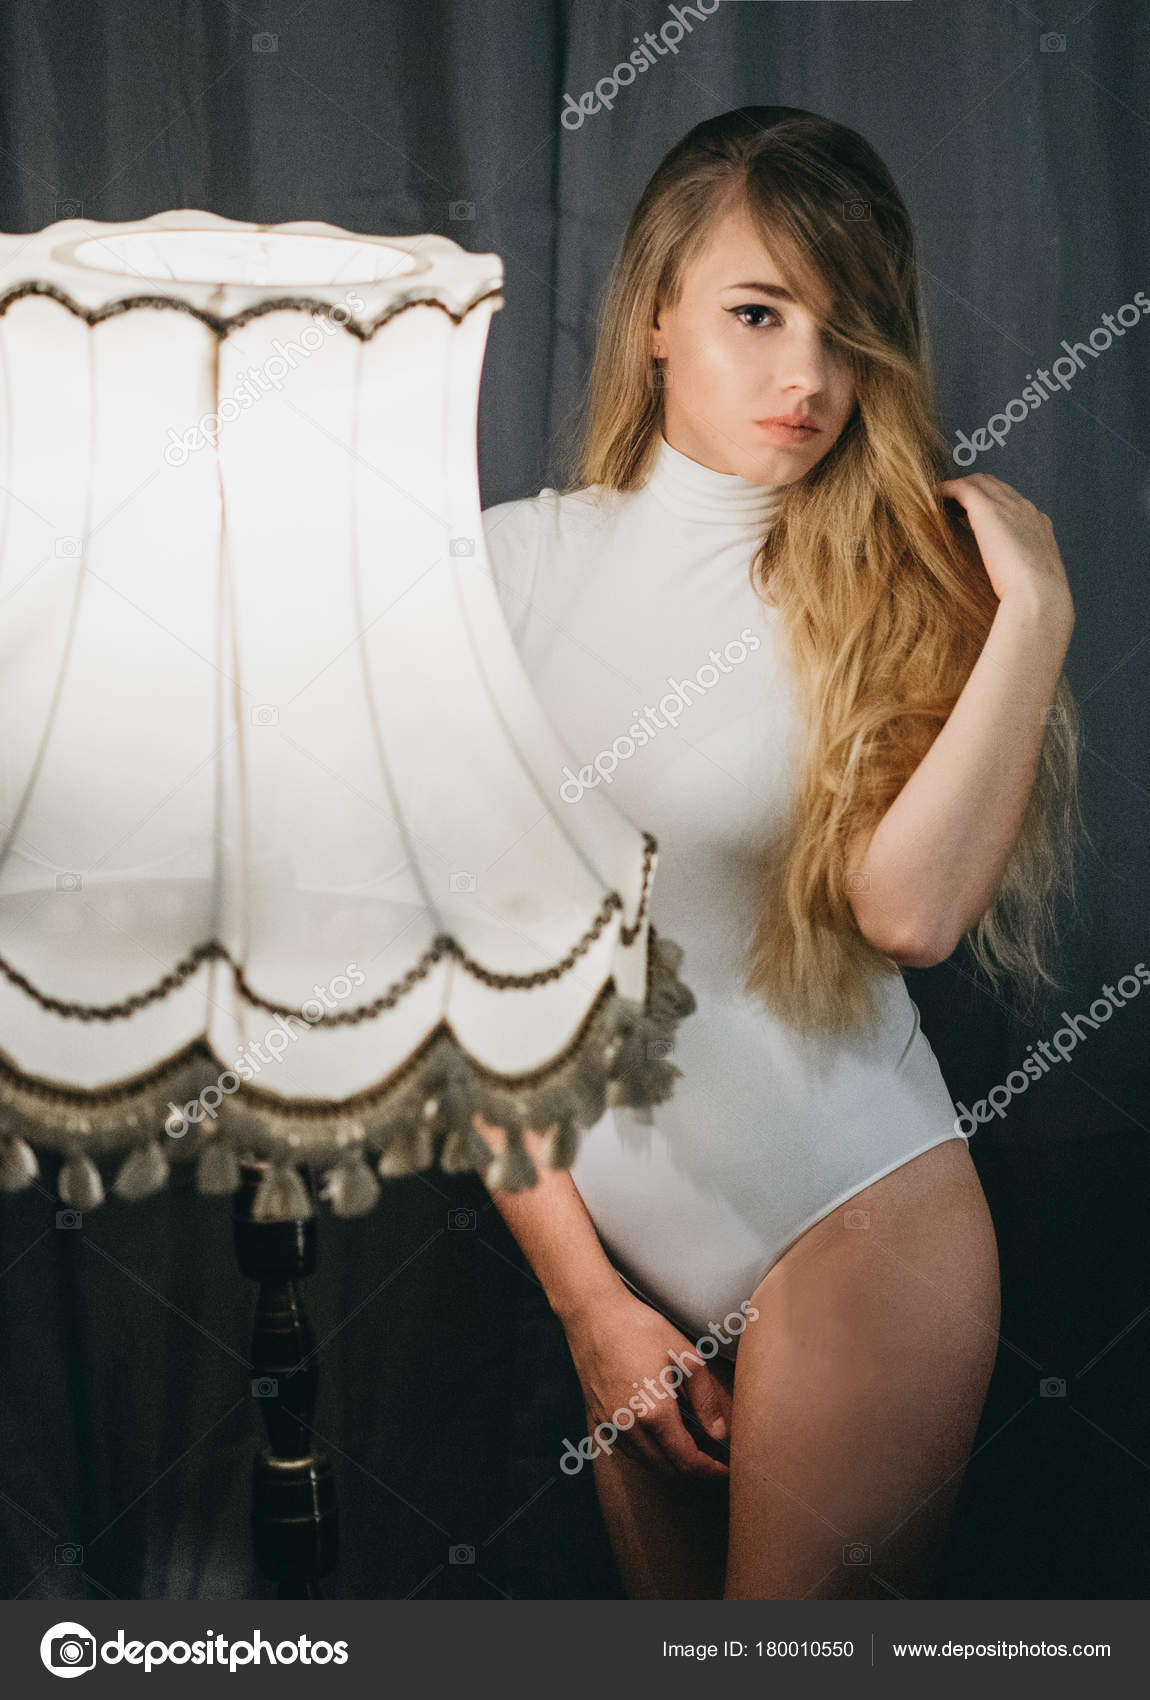 Beautiful Sexy White Girl Stock Image